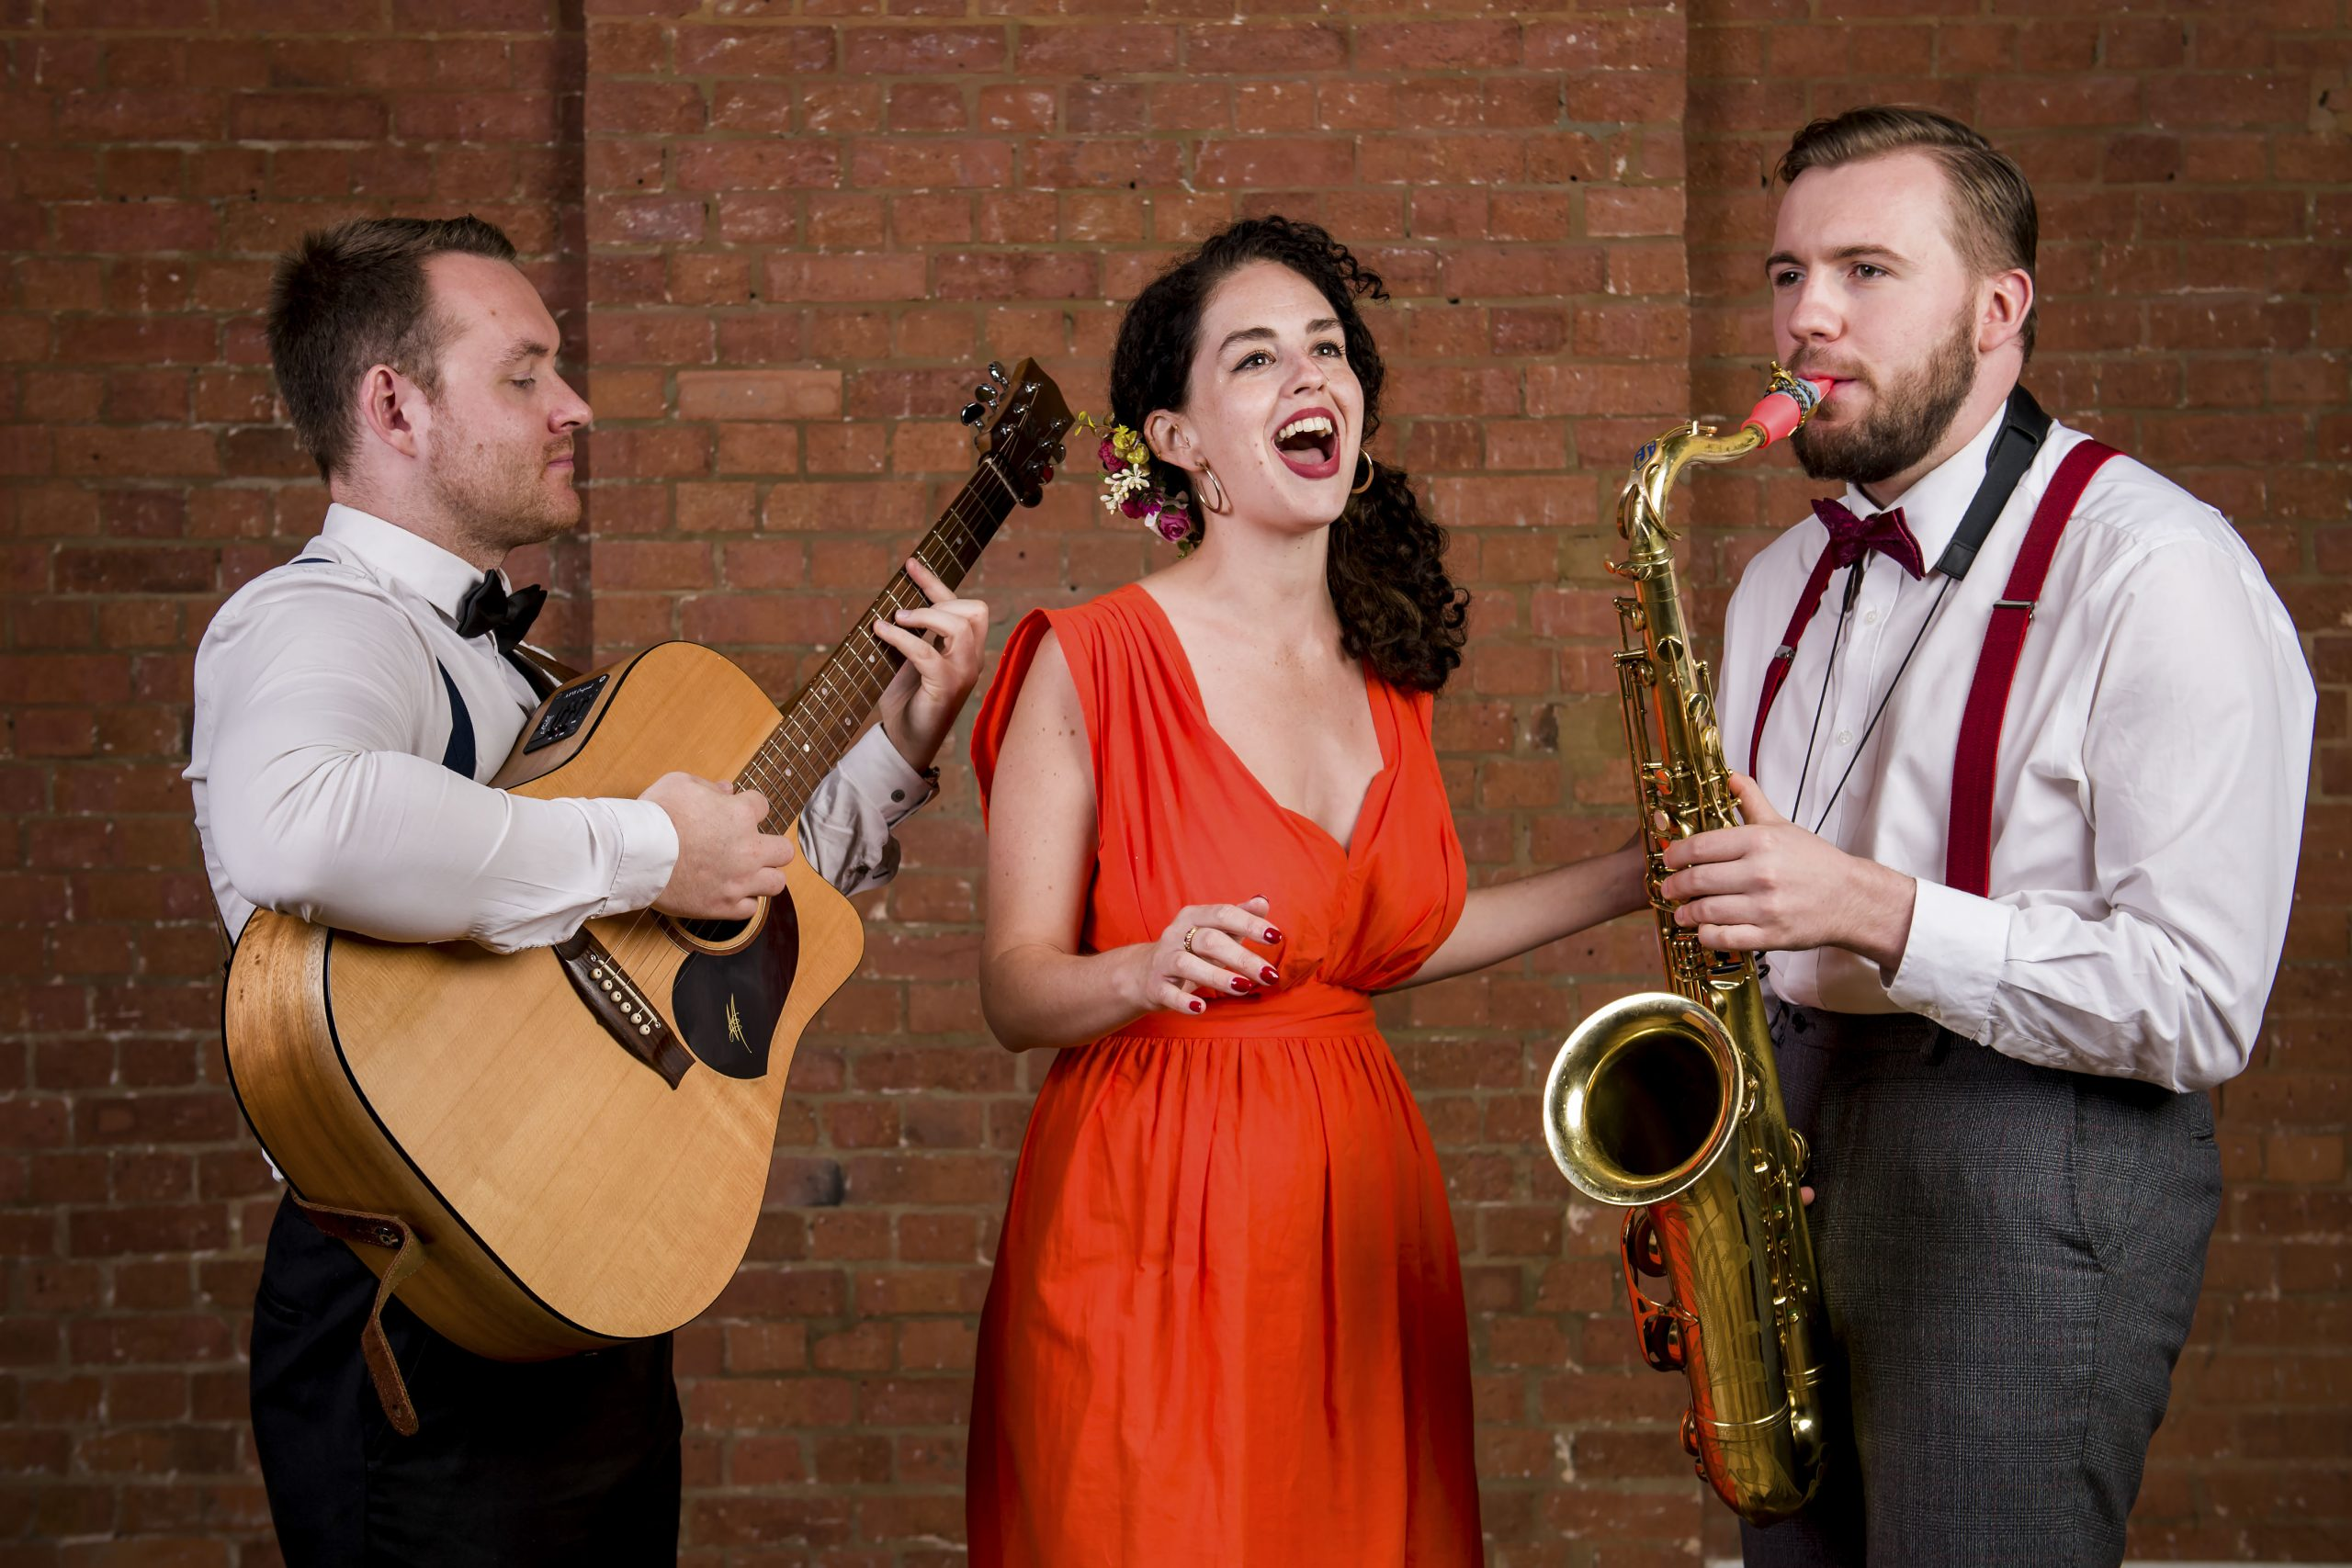 Roaming jazz band photo of guitarist, female singer in red dress and saxophonist